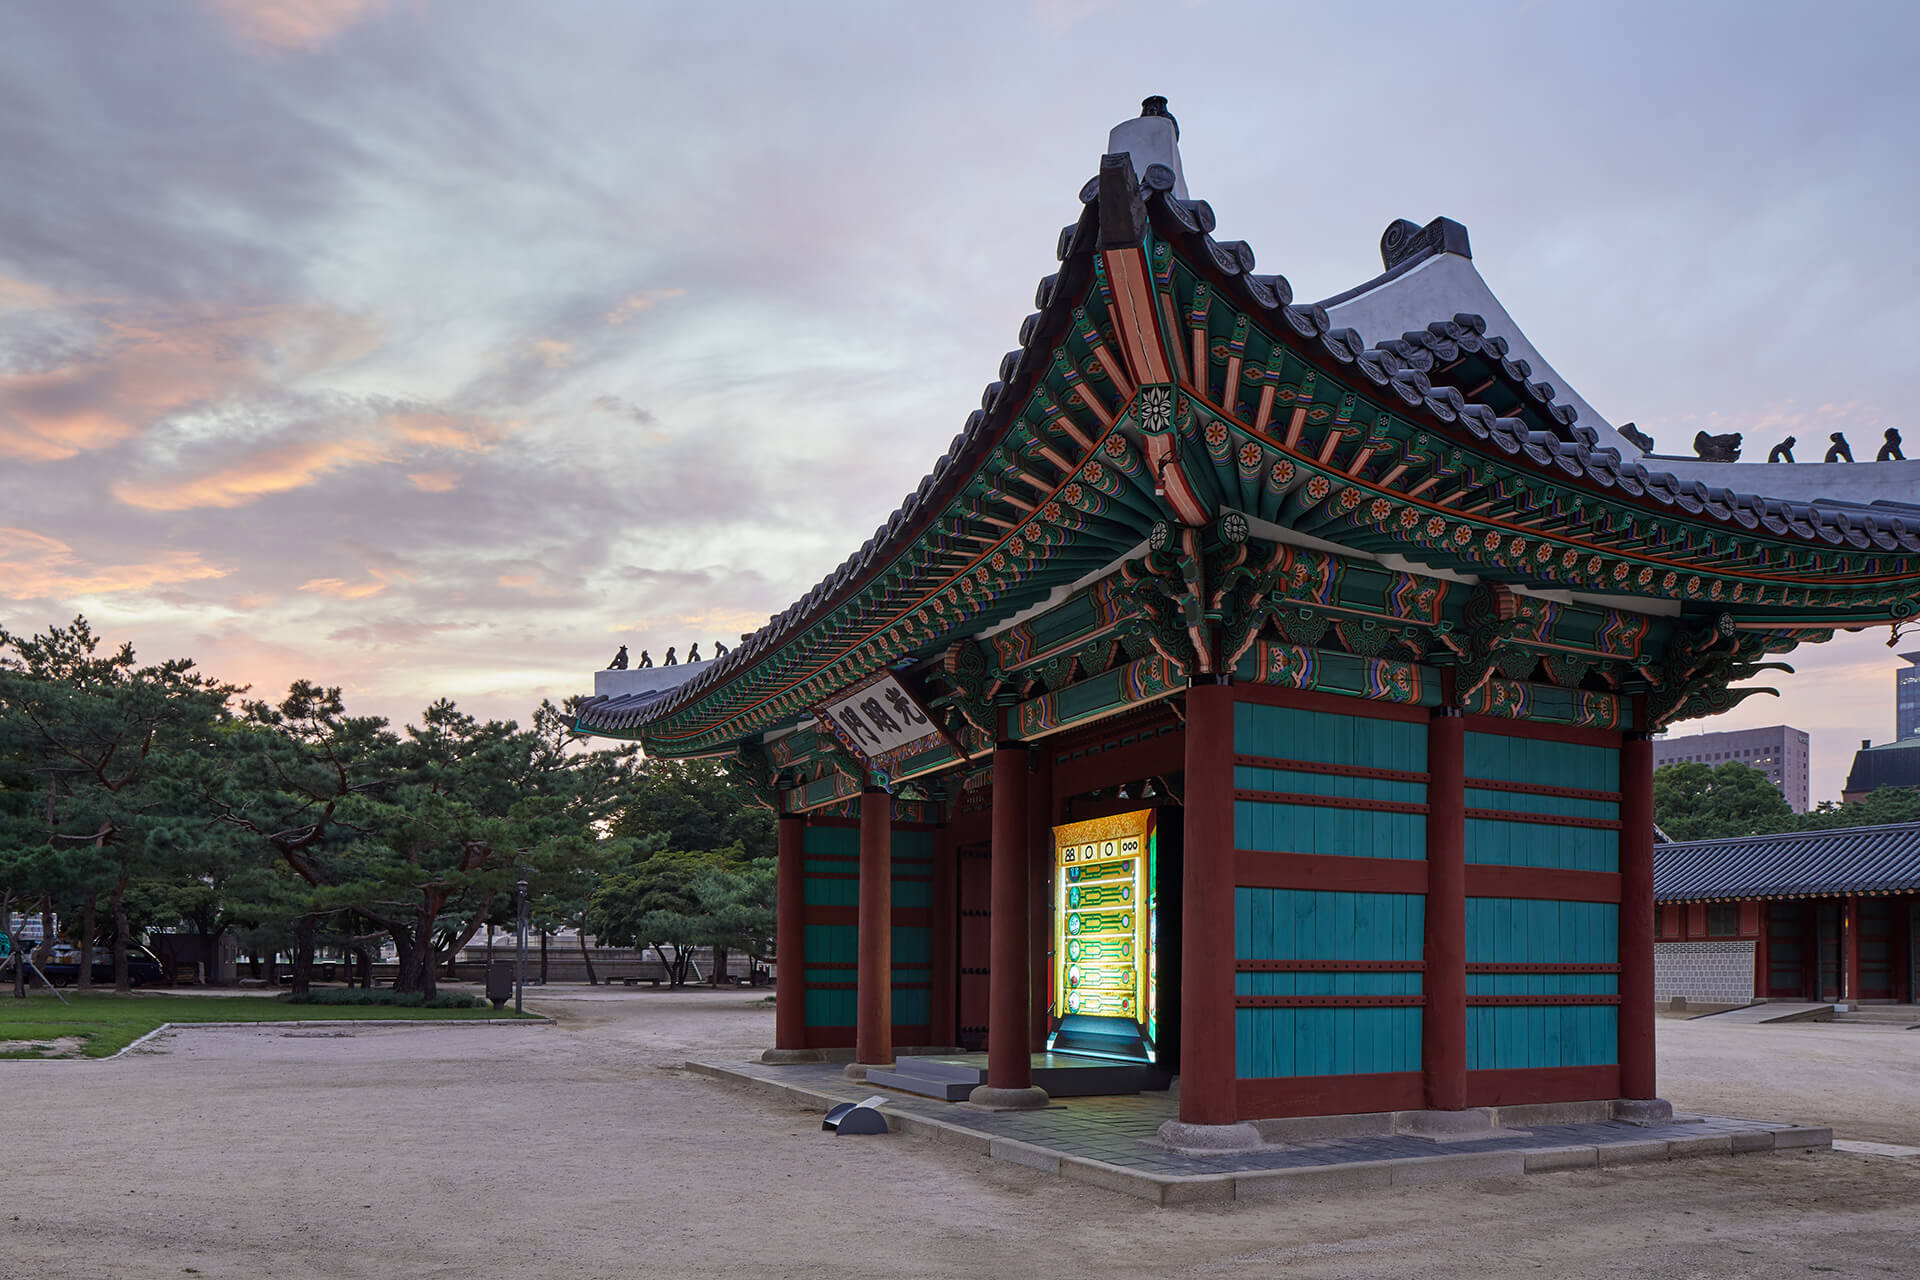 The site-specific video installation at the historic Gwangmyeongmun Gate at Deoksugung Palace in Seoul | Gate of Bright Lights | Space Popular | STIRworld